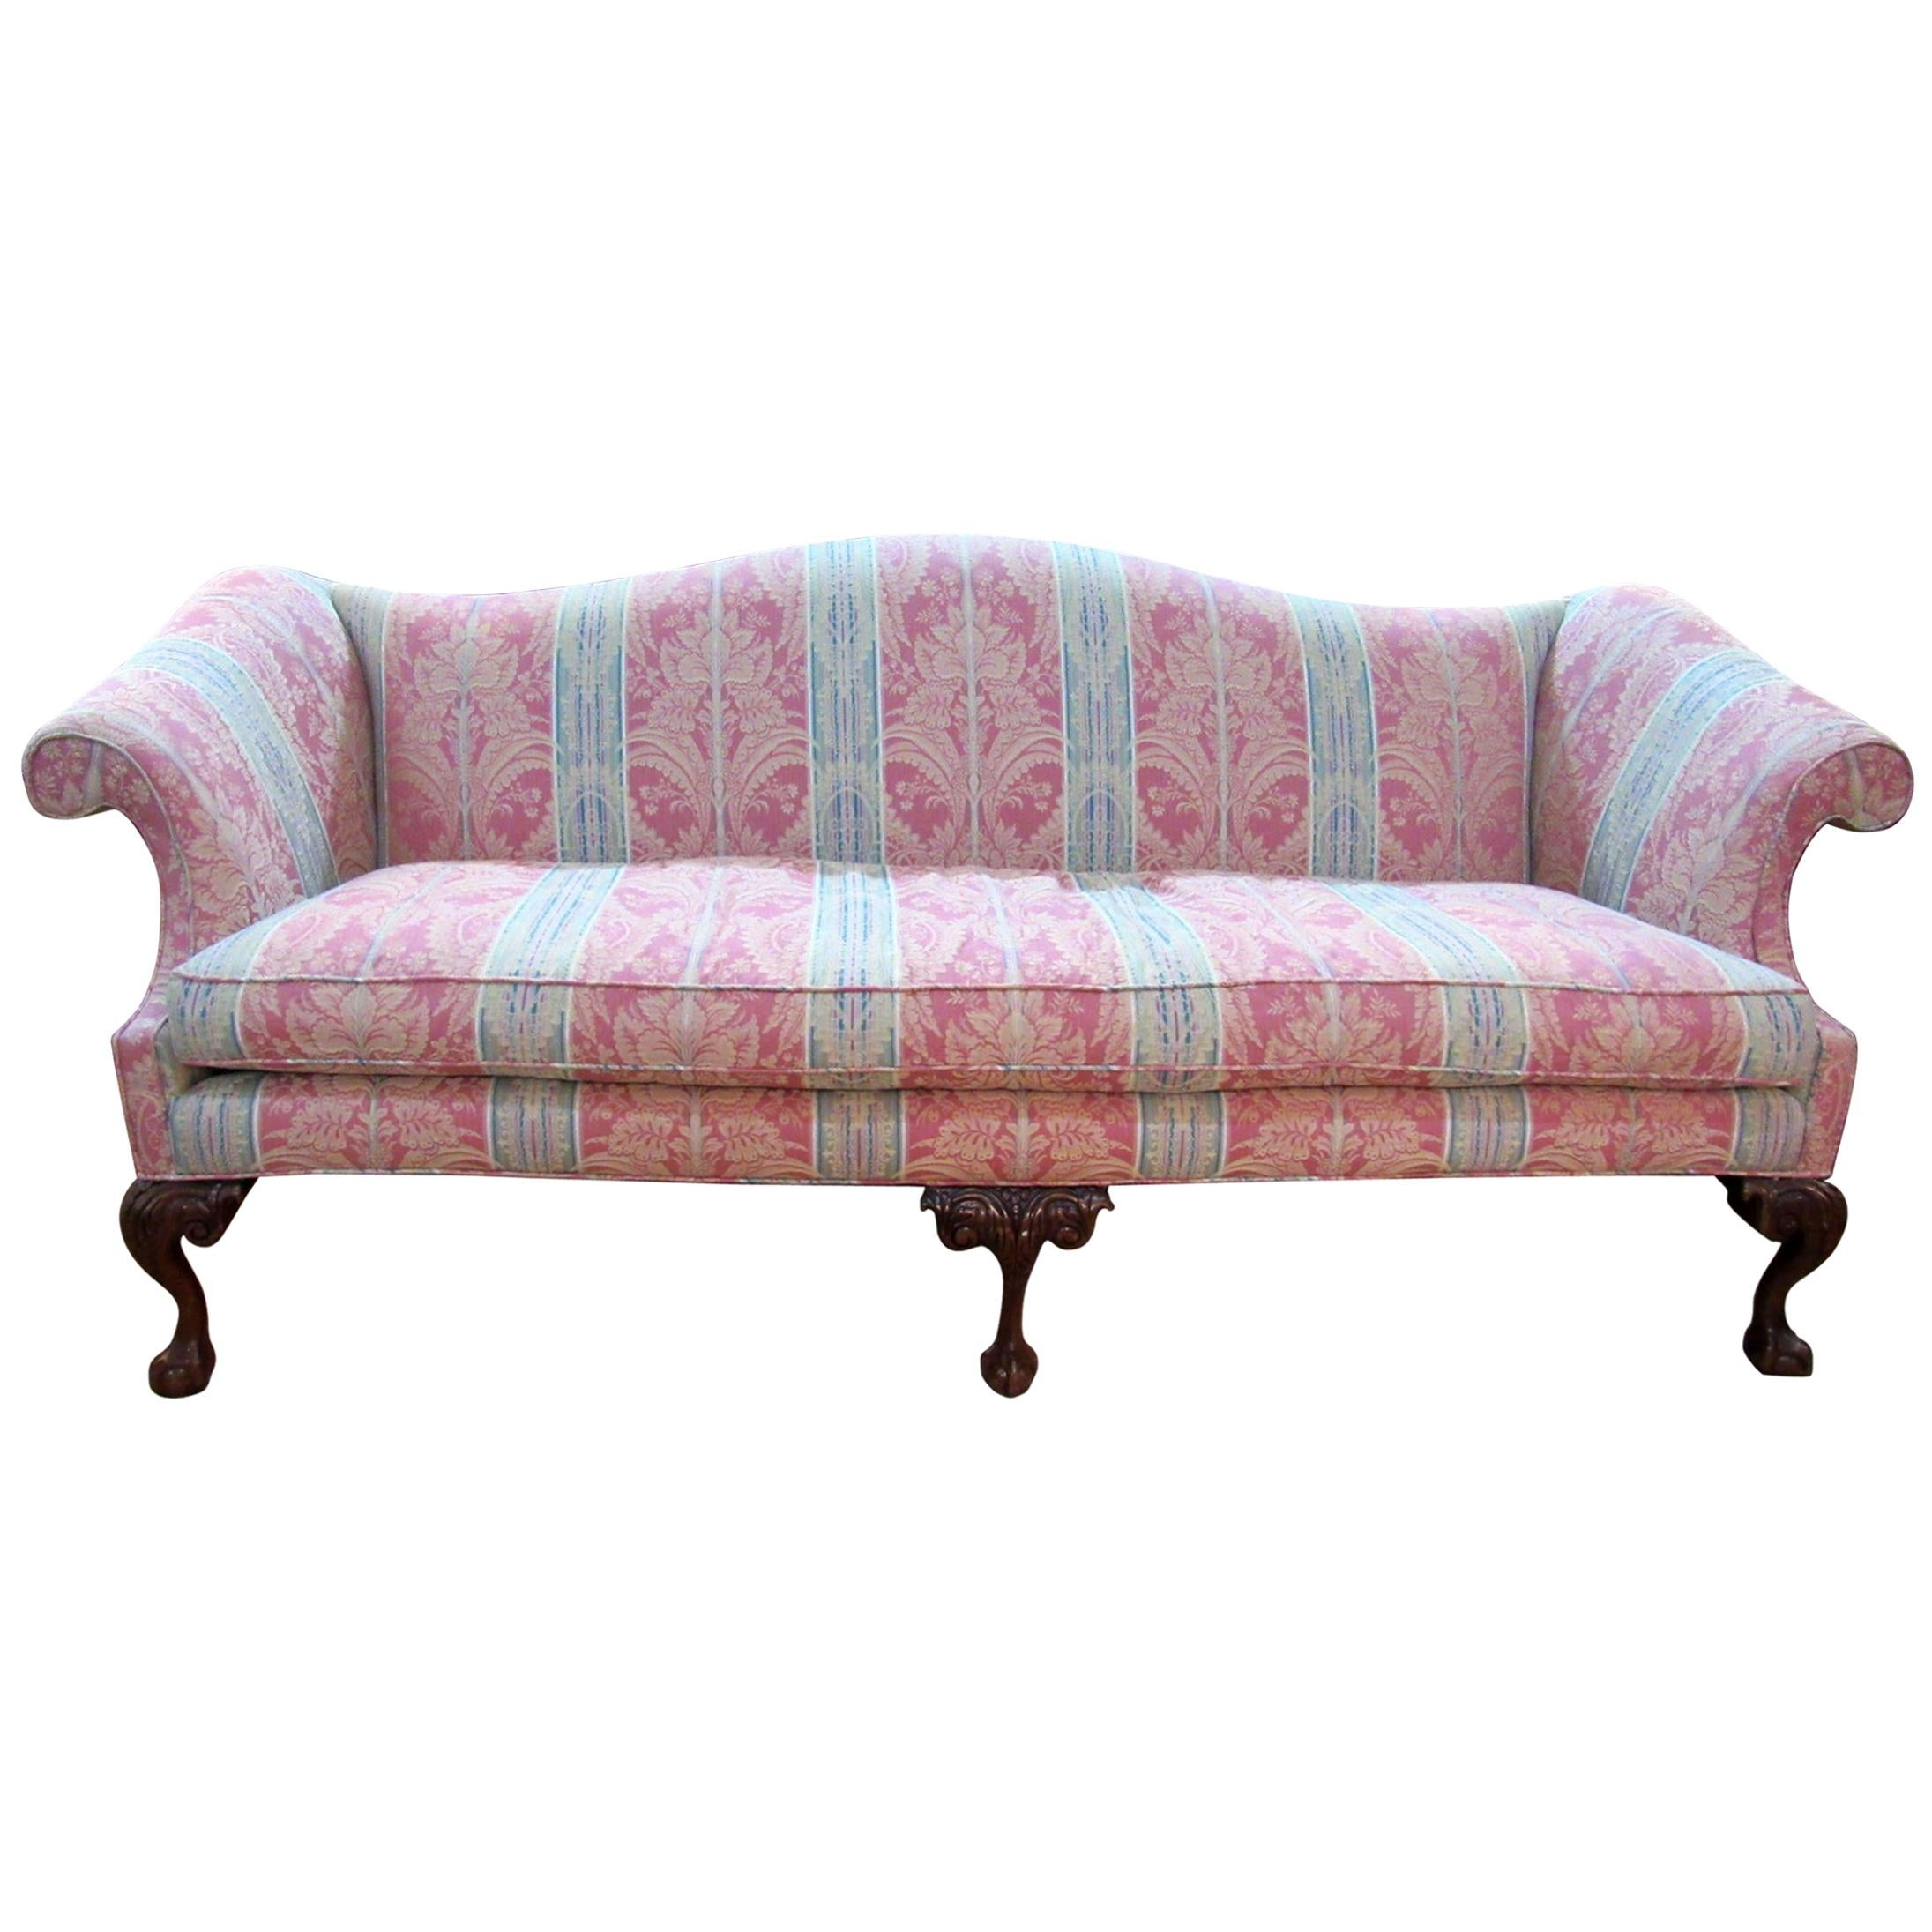 20th Century Chippendale Style Camelback Sofa For Sale Camelback Sofas For Sale95